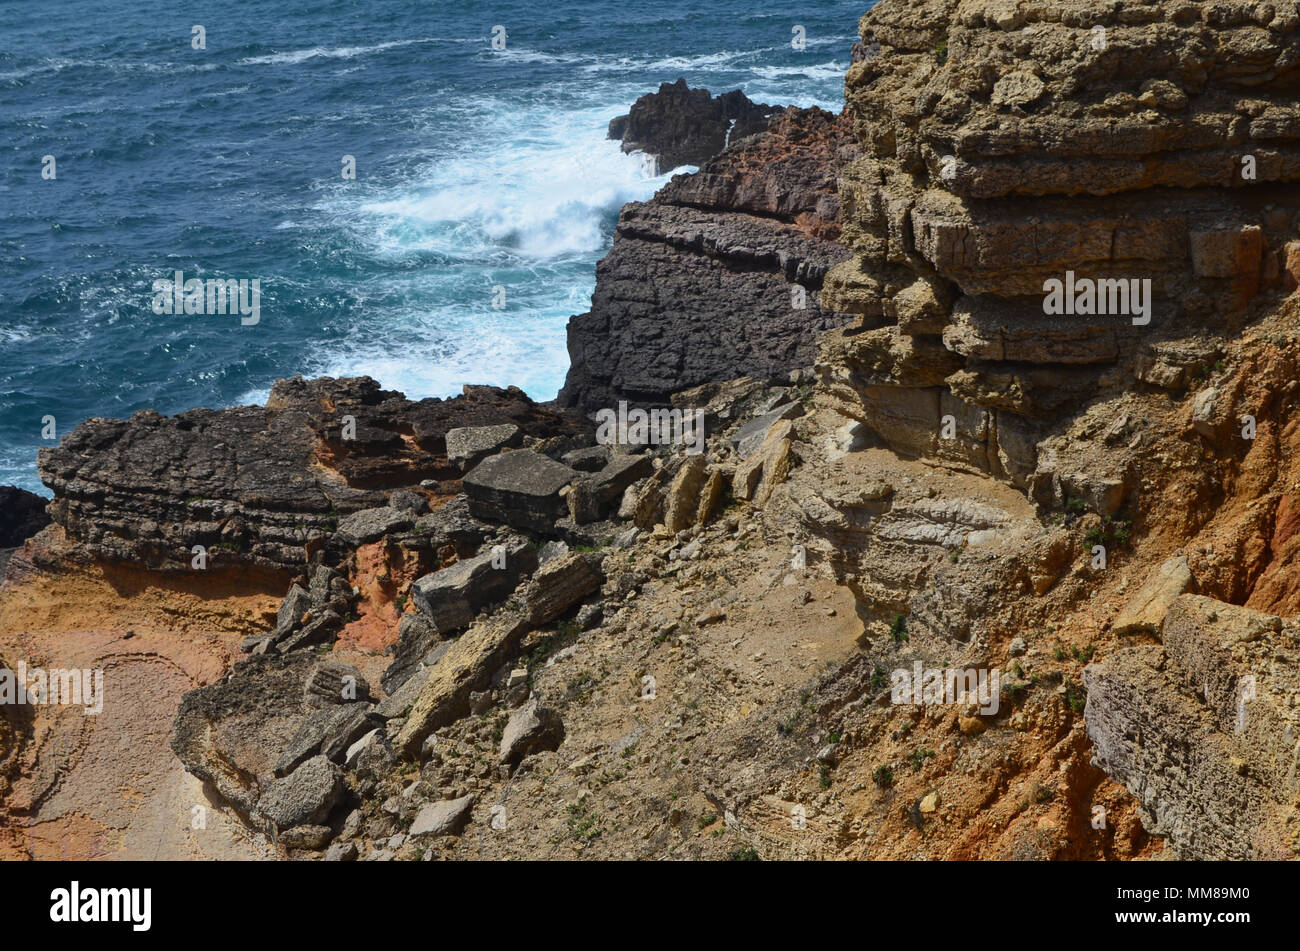 Cliffs and geological unconformities at the Costa Vicentina Natural Park, Southwestern Portugal - Stock Image